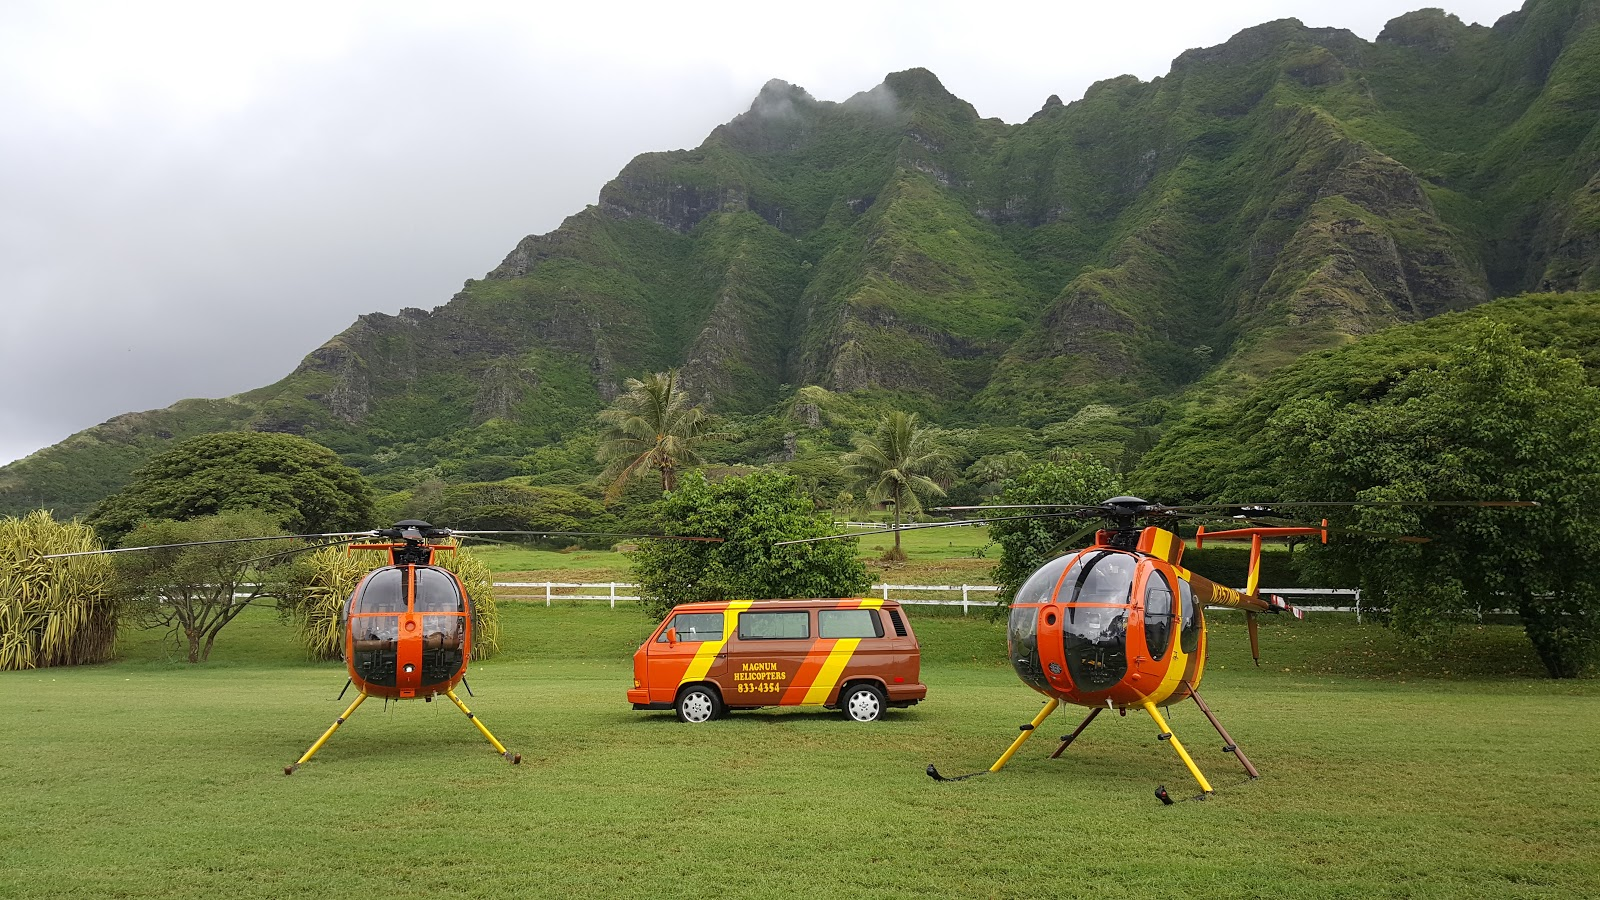 Magnum Helicopter Ride-Oahu, Hawaii Doors Off Helicopter Experience